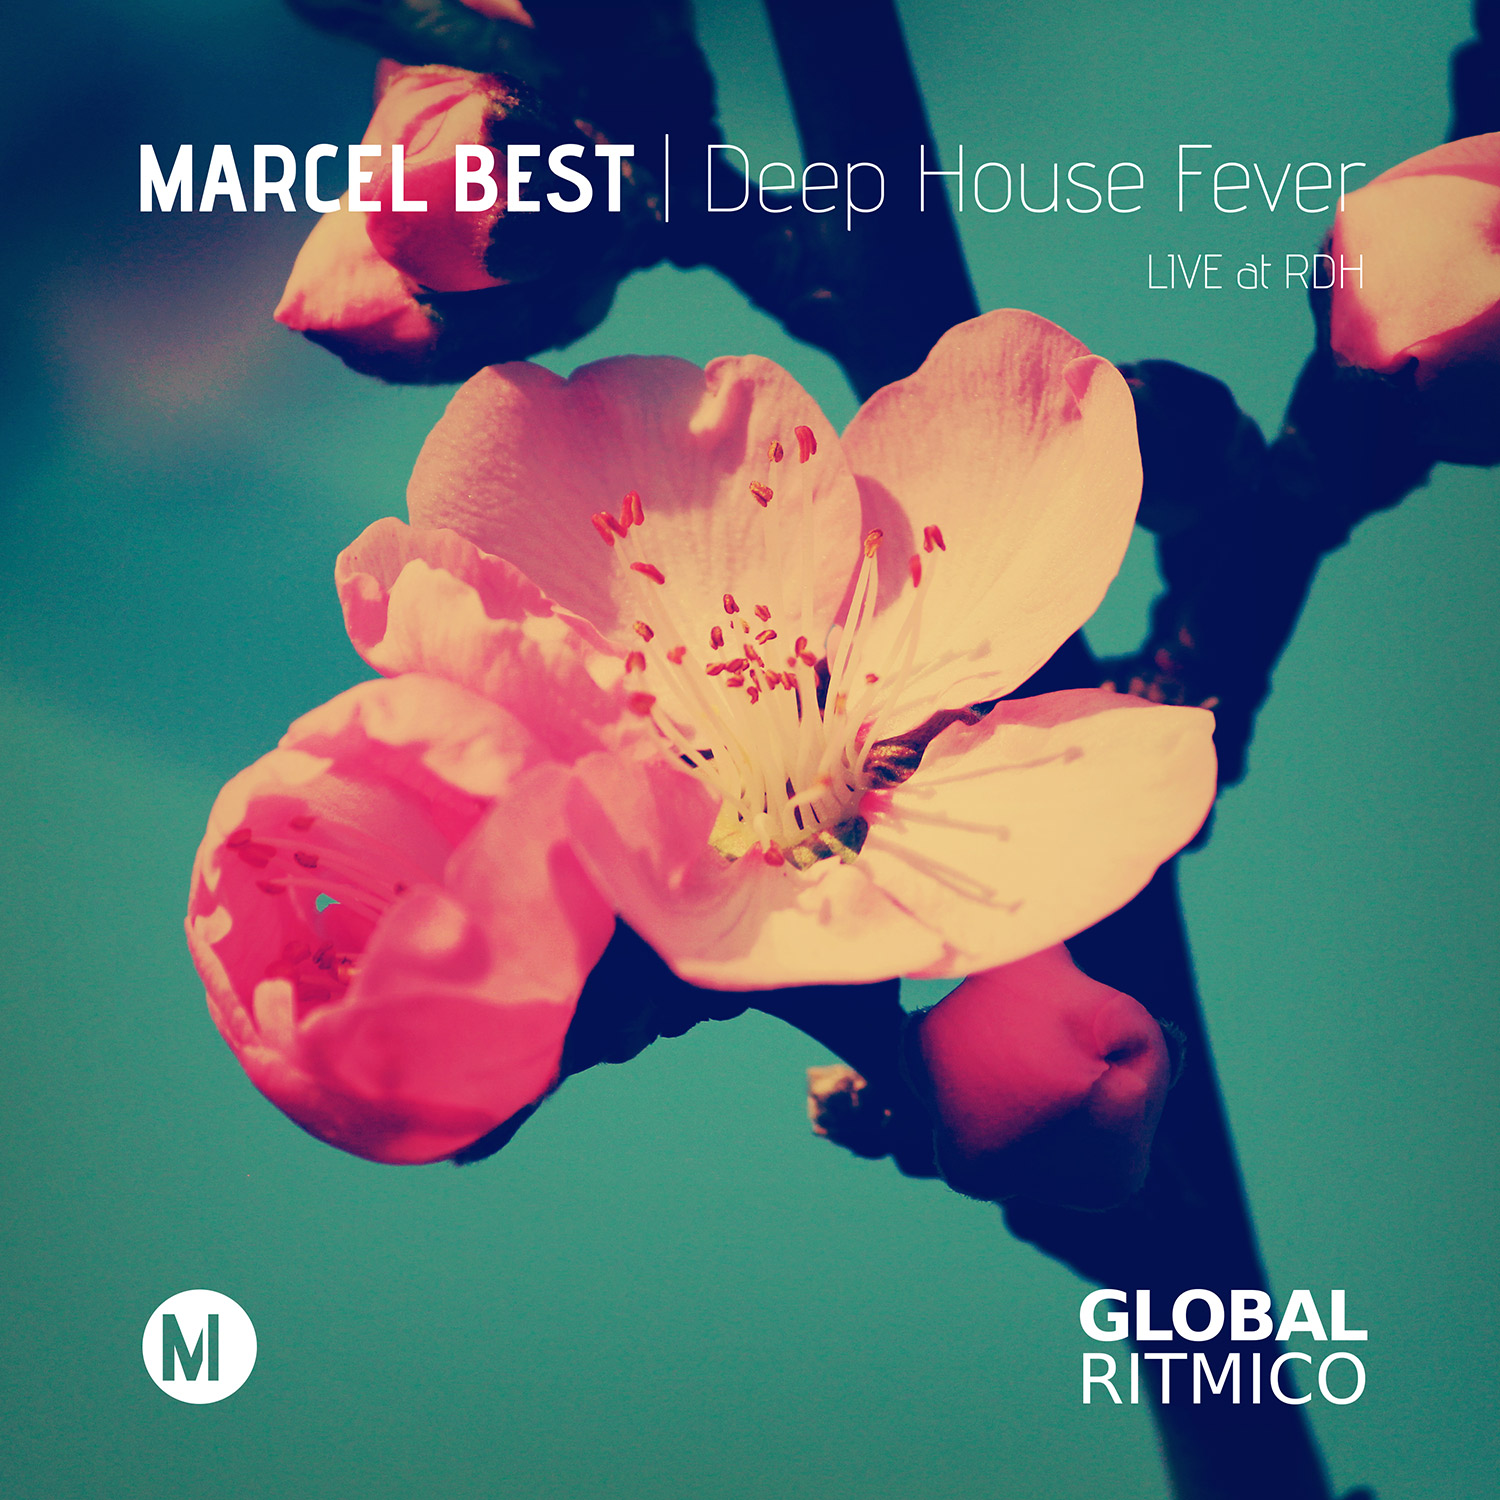 Marcel Best – Deep House Fever – LIVE at RDH